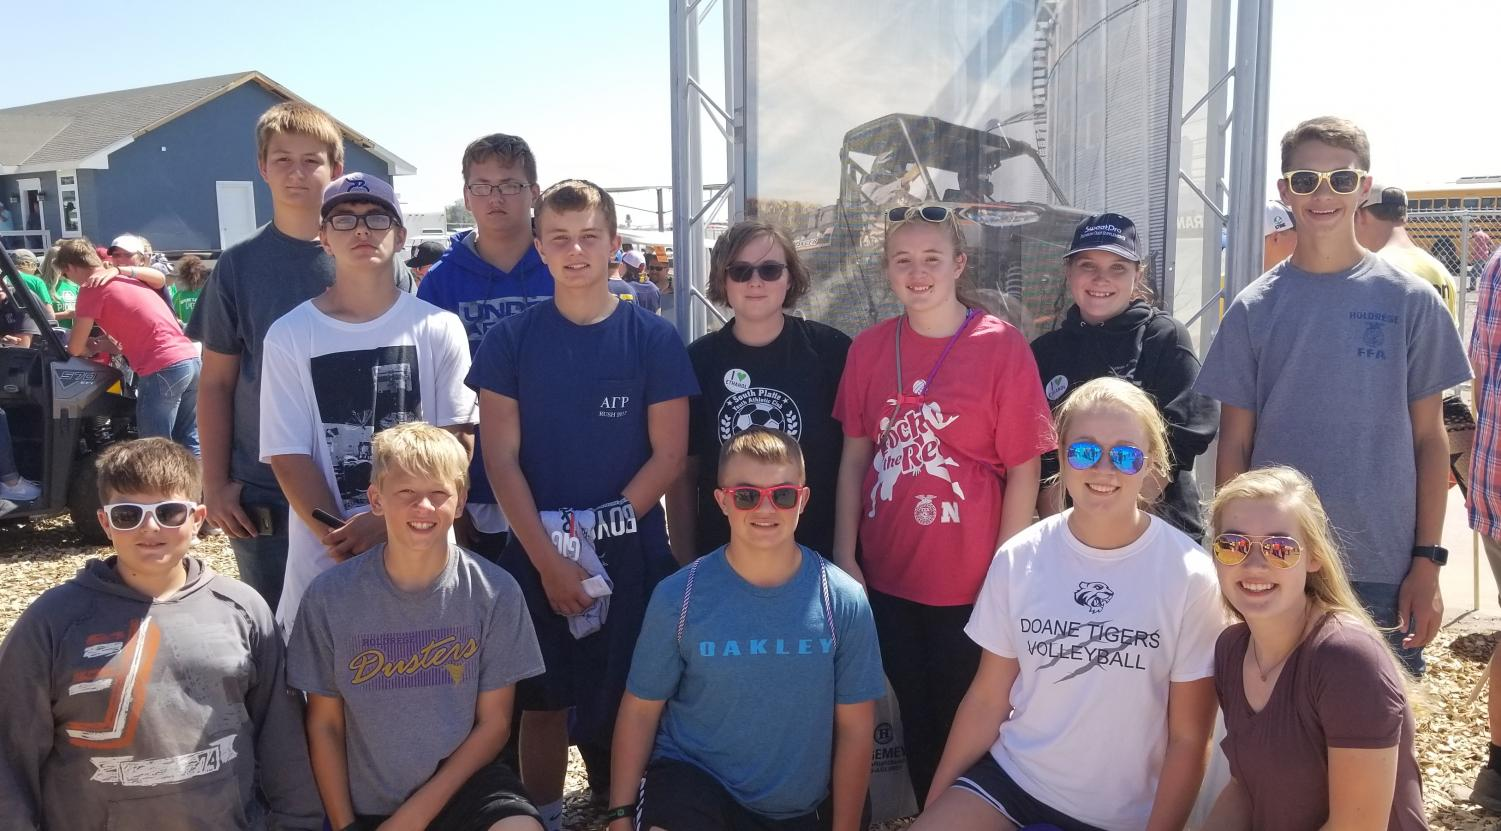 Introduction to Agriculture Class Attendees to Husker Harvest Days: Front Row:  Caid Bailey, Hunter Ness, Mason Marquart, McKenna Ortgiesen. Bailey Edgren.  Back Row Standing:  Gabe Greenlee, August Wick, Braxten Krejci, Jeremiah Johnson, Alexis England, Erika Wilkins, Anna Thomas, Kade Komenda